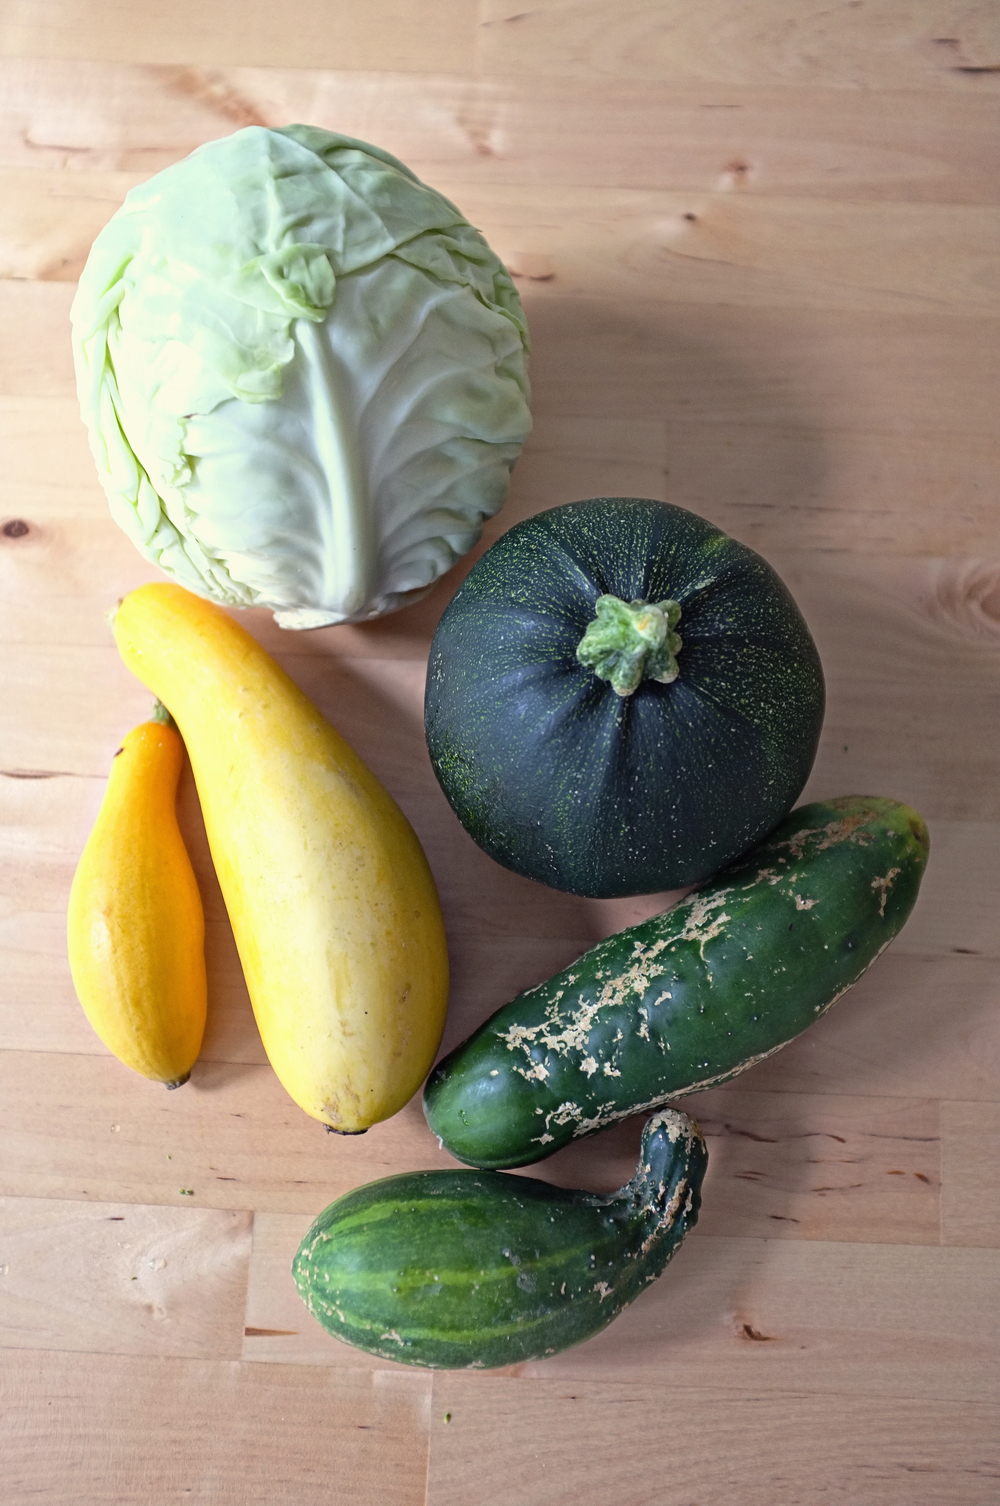 Cabbage, green globe zucchini, yellow squash, and cucumbers